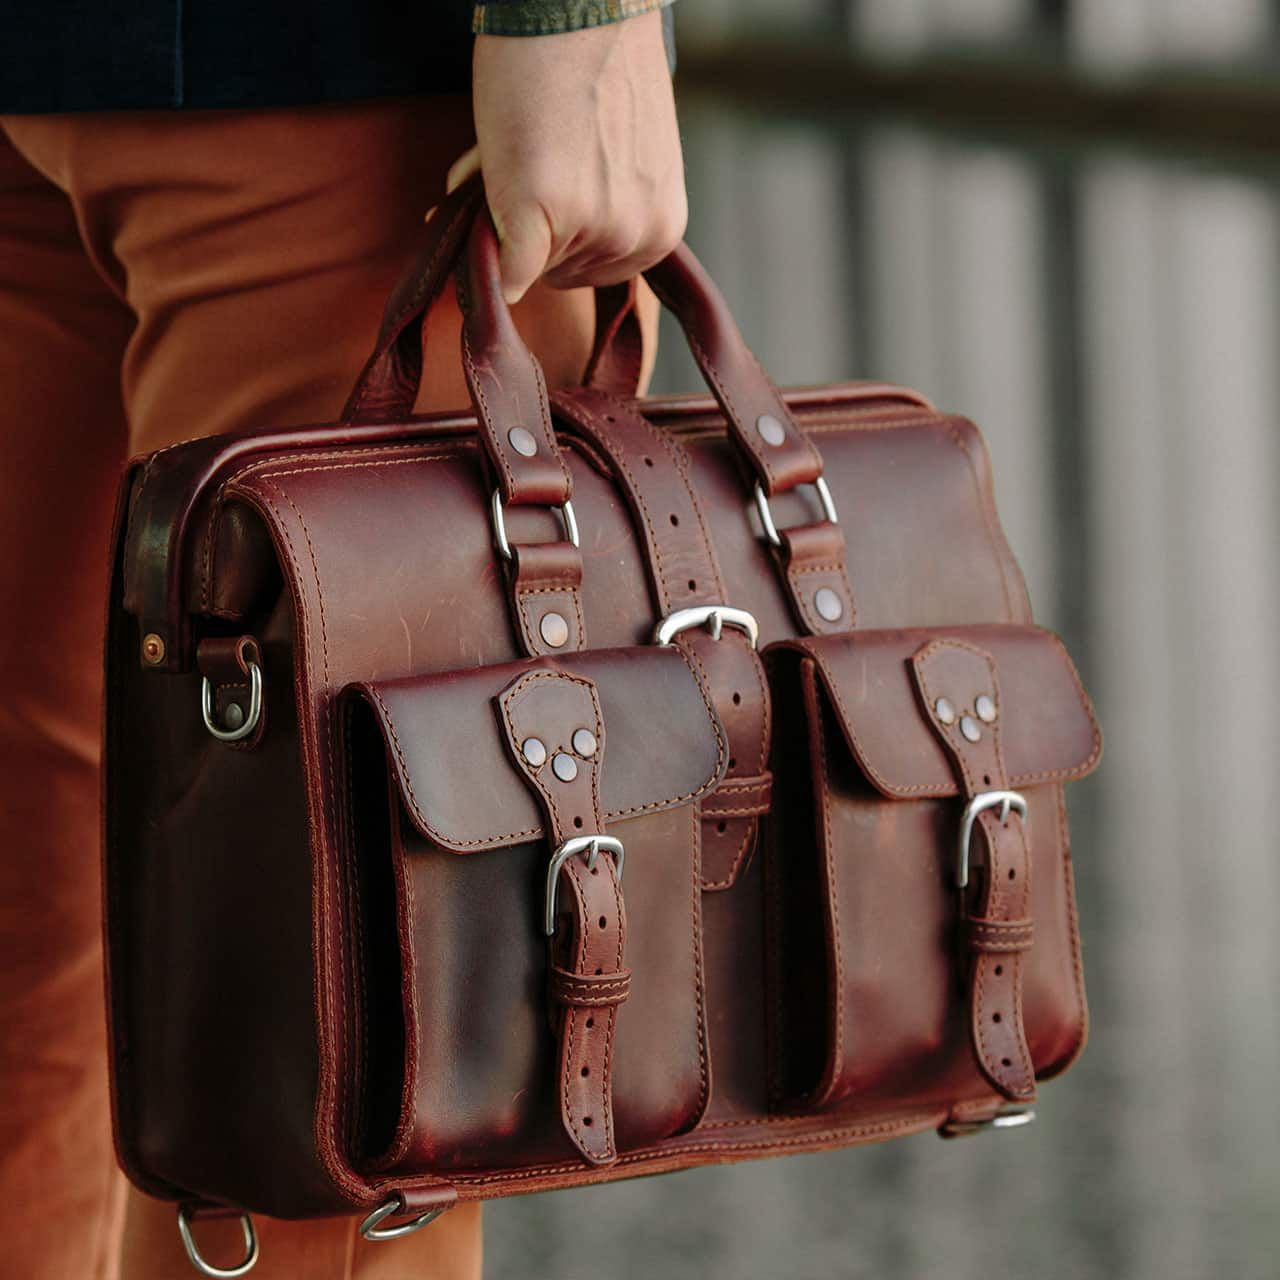 Leather Flight Bag being Carried by the Handles